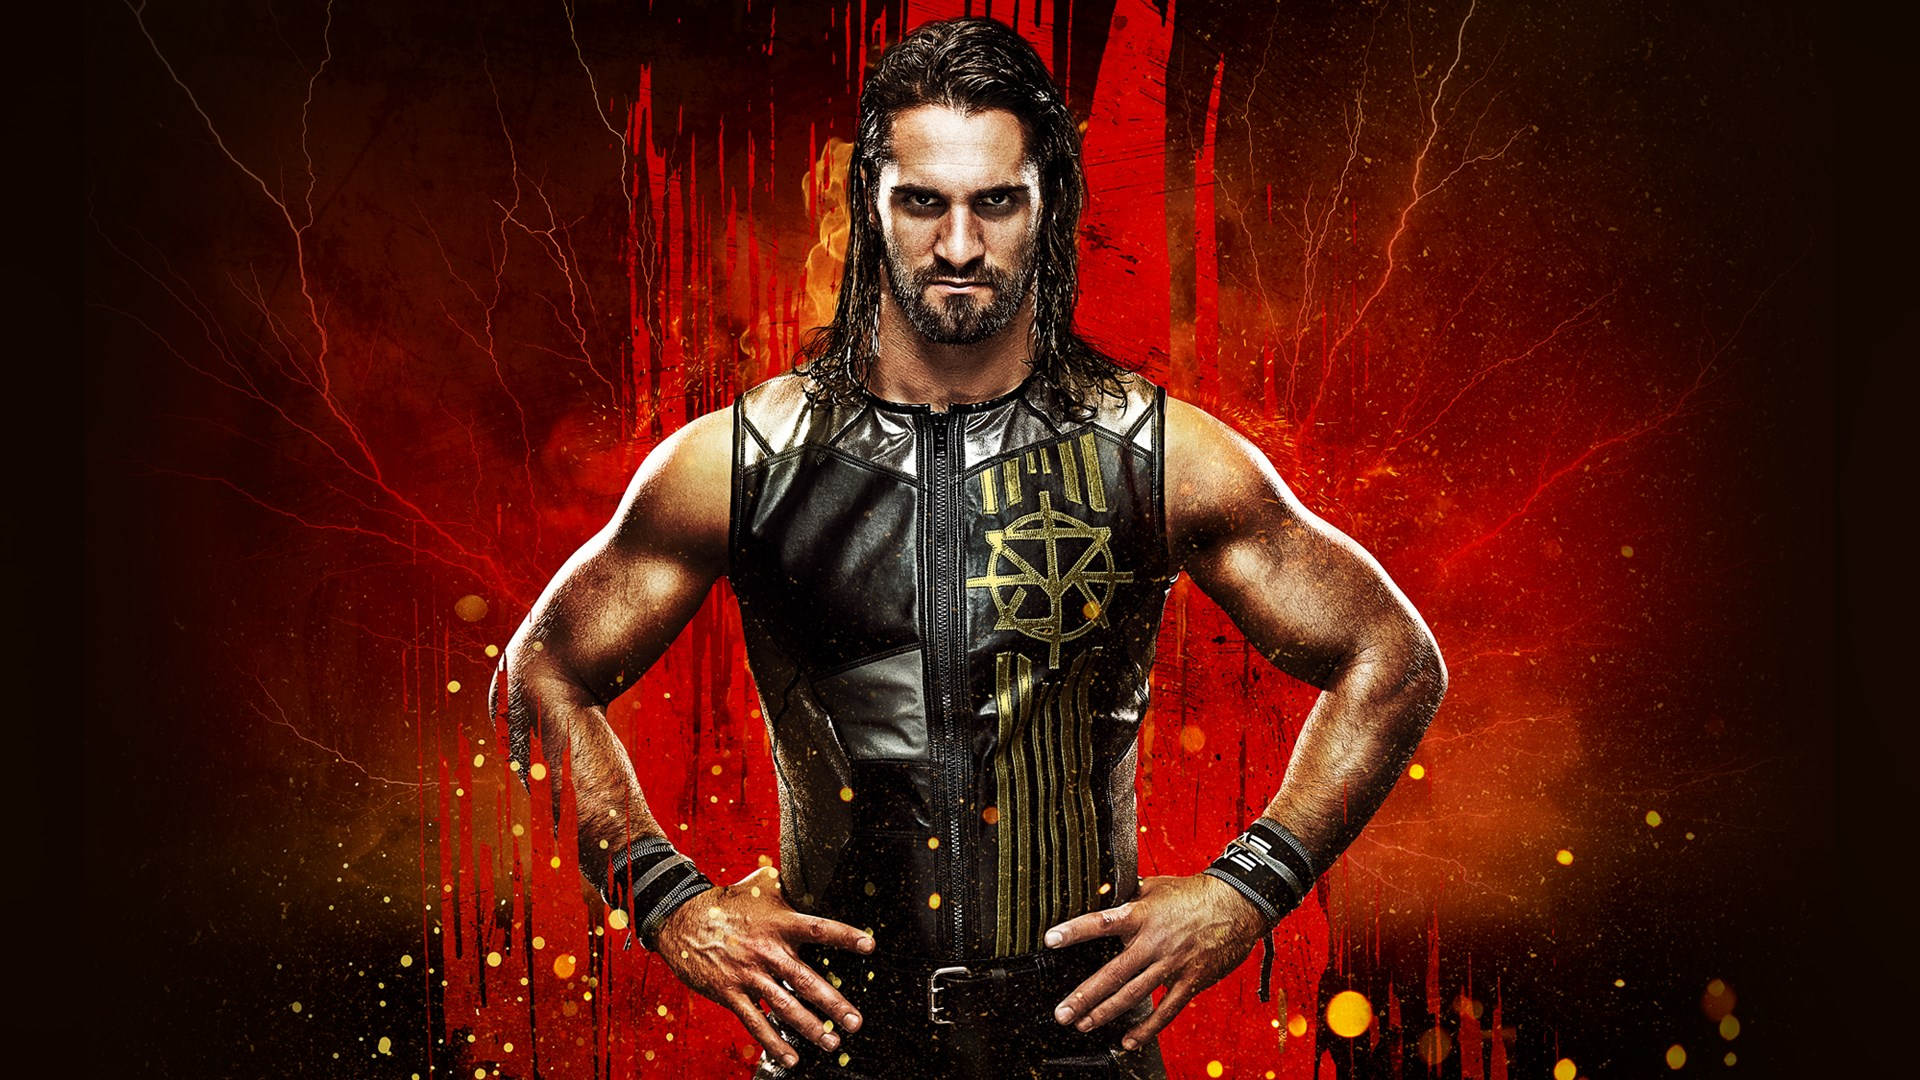 seth rollins logo wallpaper